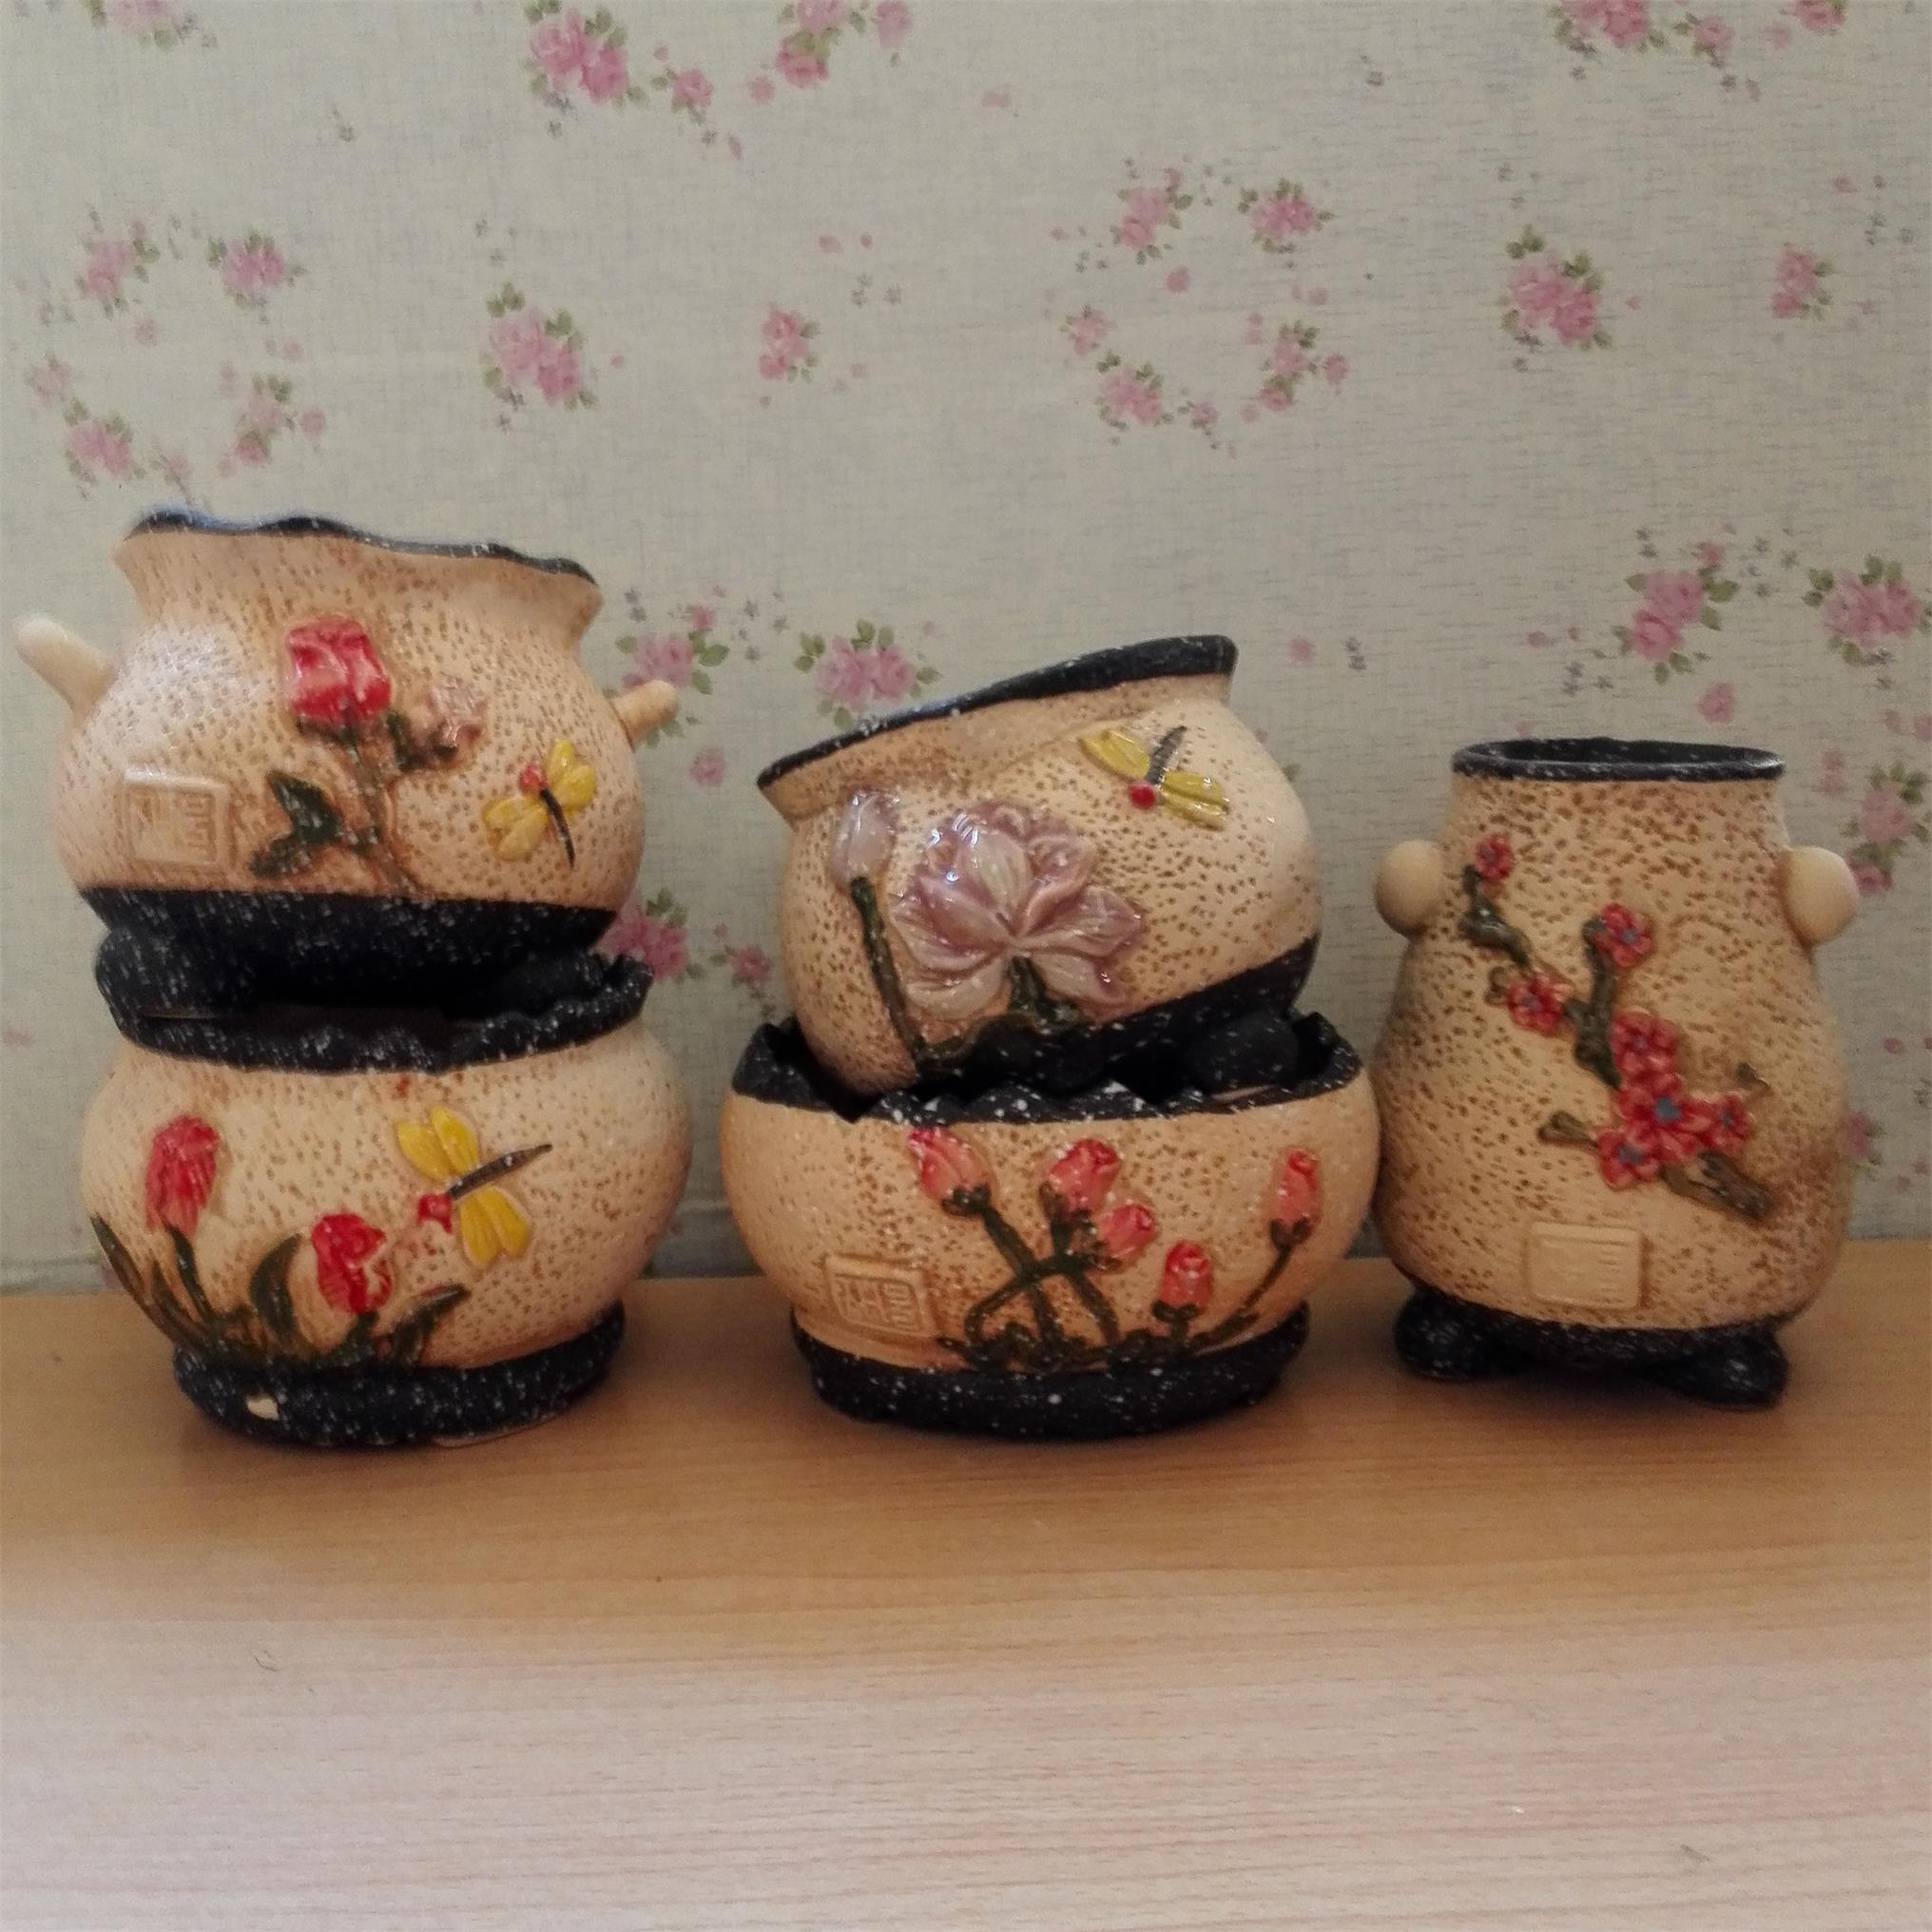 Retro flower painted stoneware pots ceramic pots fleshy retro creative big pots ceramic flower pots and more meat plants